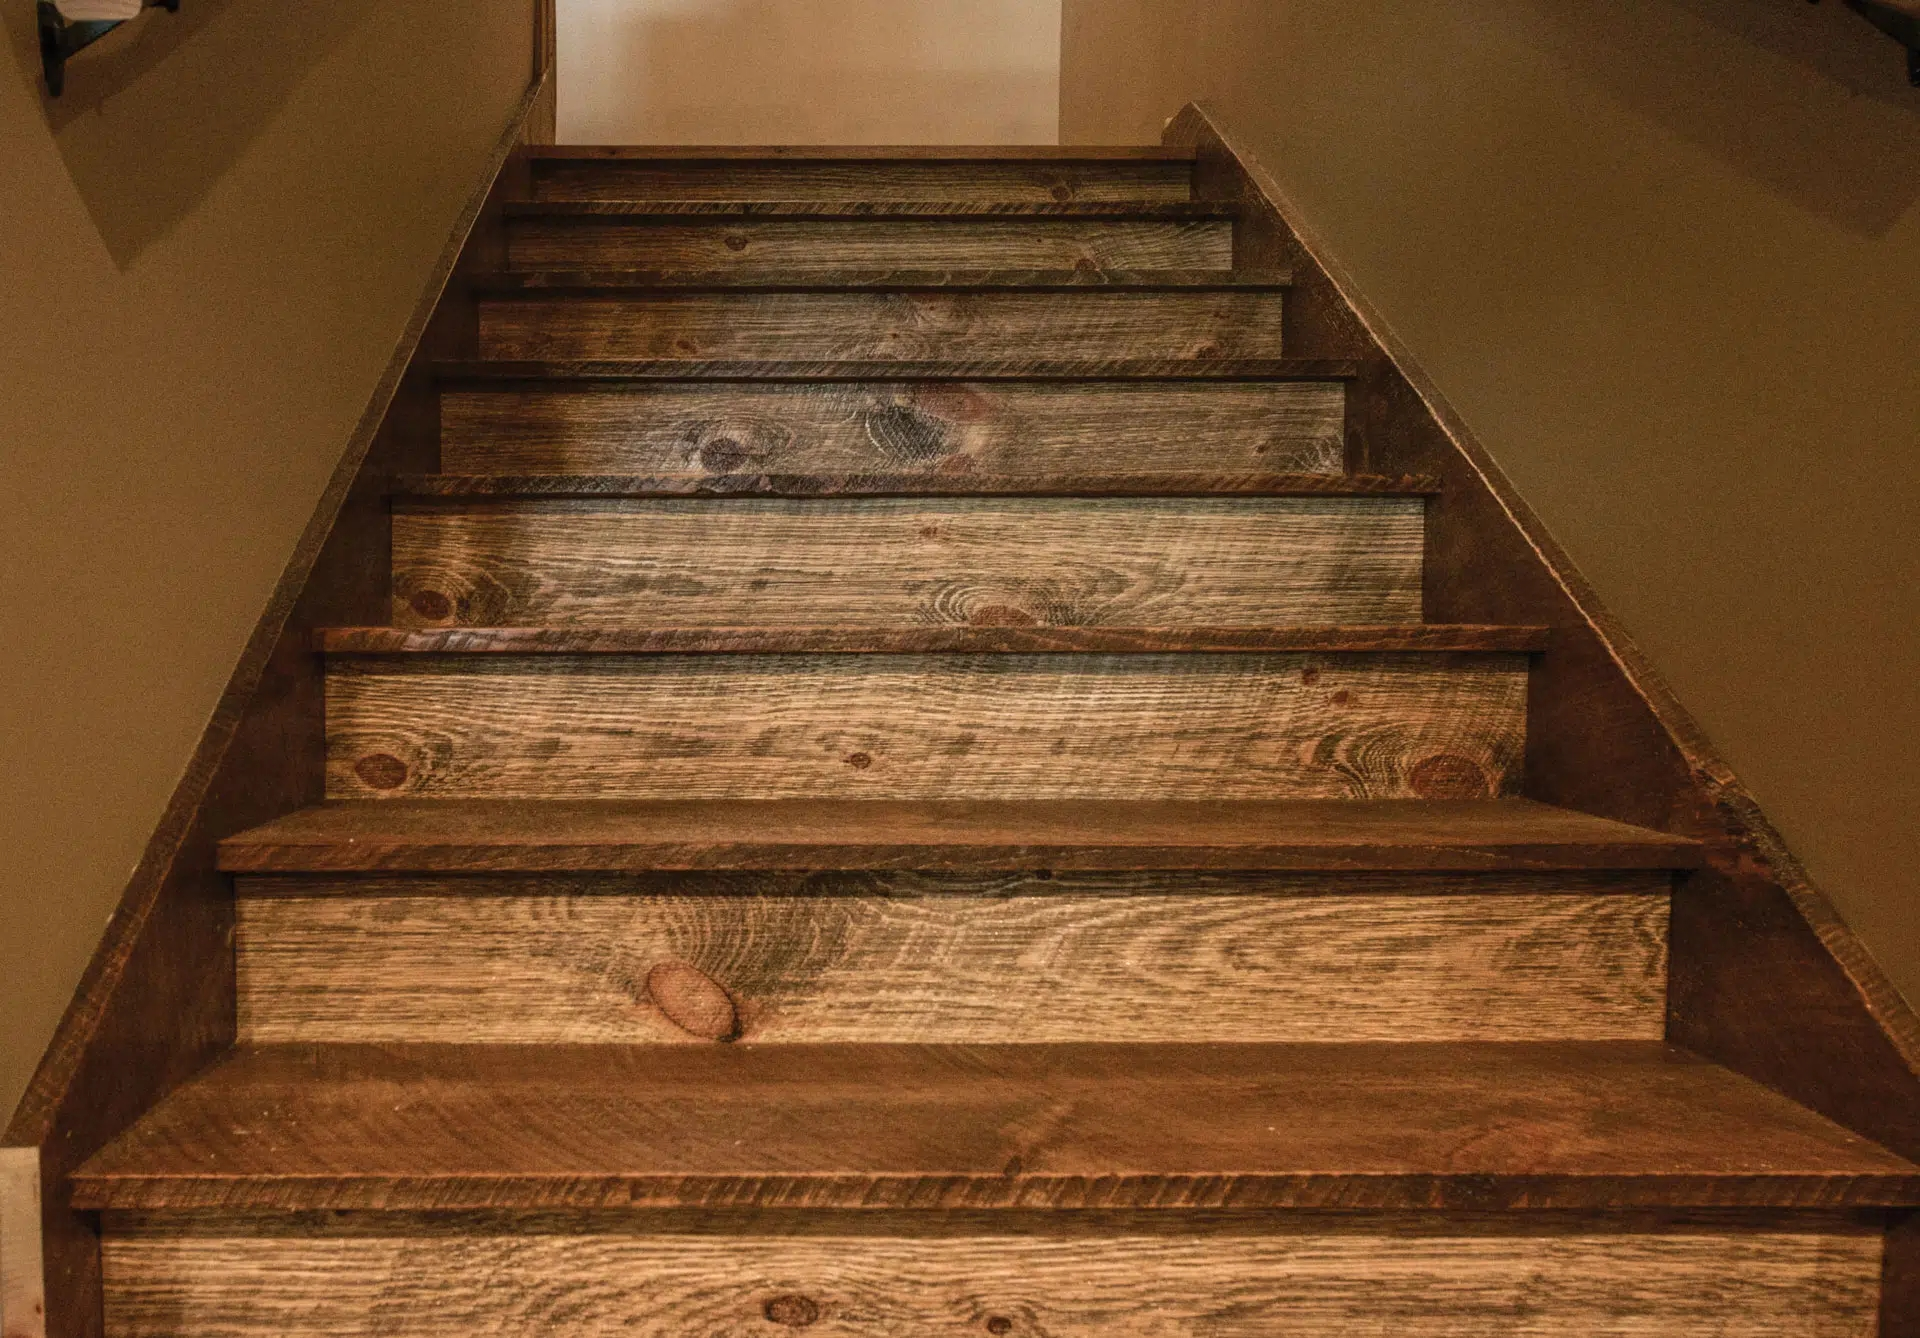 Barnwood Stair Systems In Wisconsin Forever Barnwood | Reclaimed Wood Stairs For Sale | Stair Railing | Wooden | Staircase Makeover | Handrail | Van Gieson